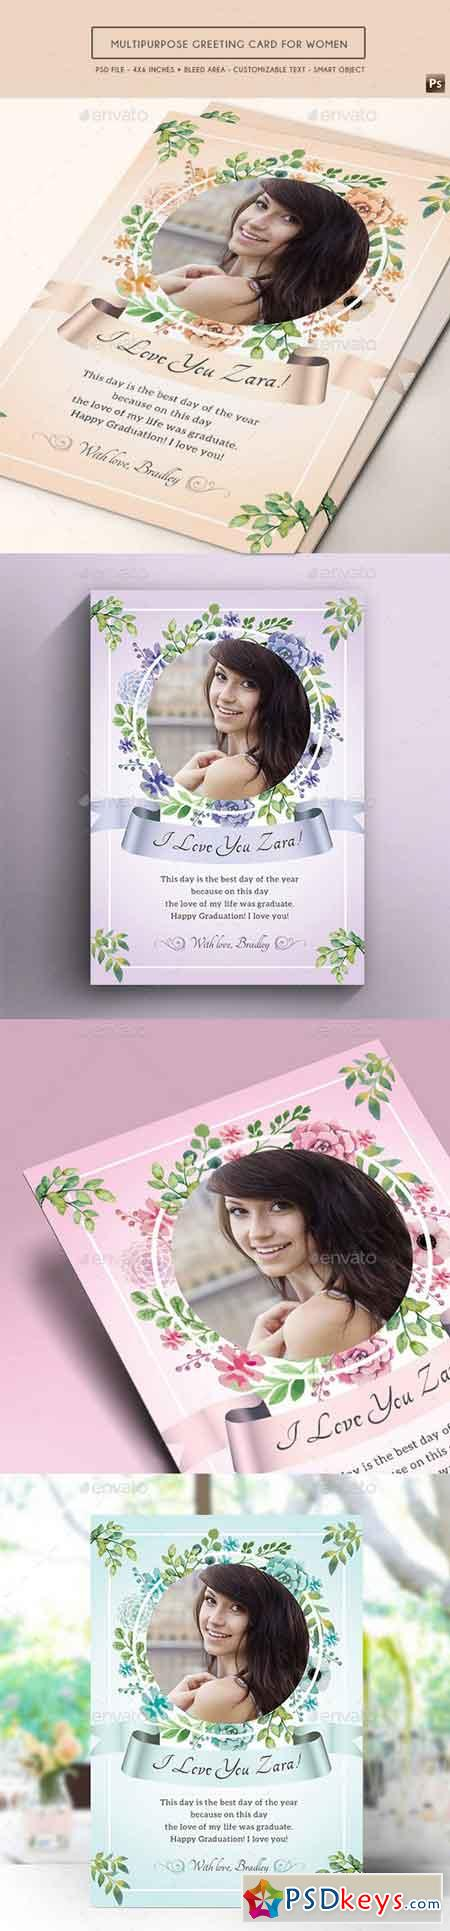 Multipurpose Greeting Card for Women 17587161